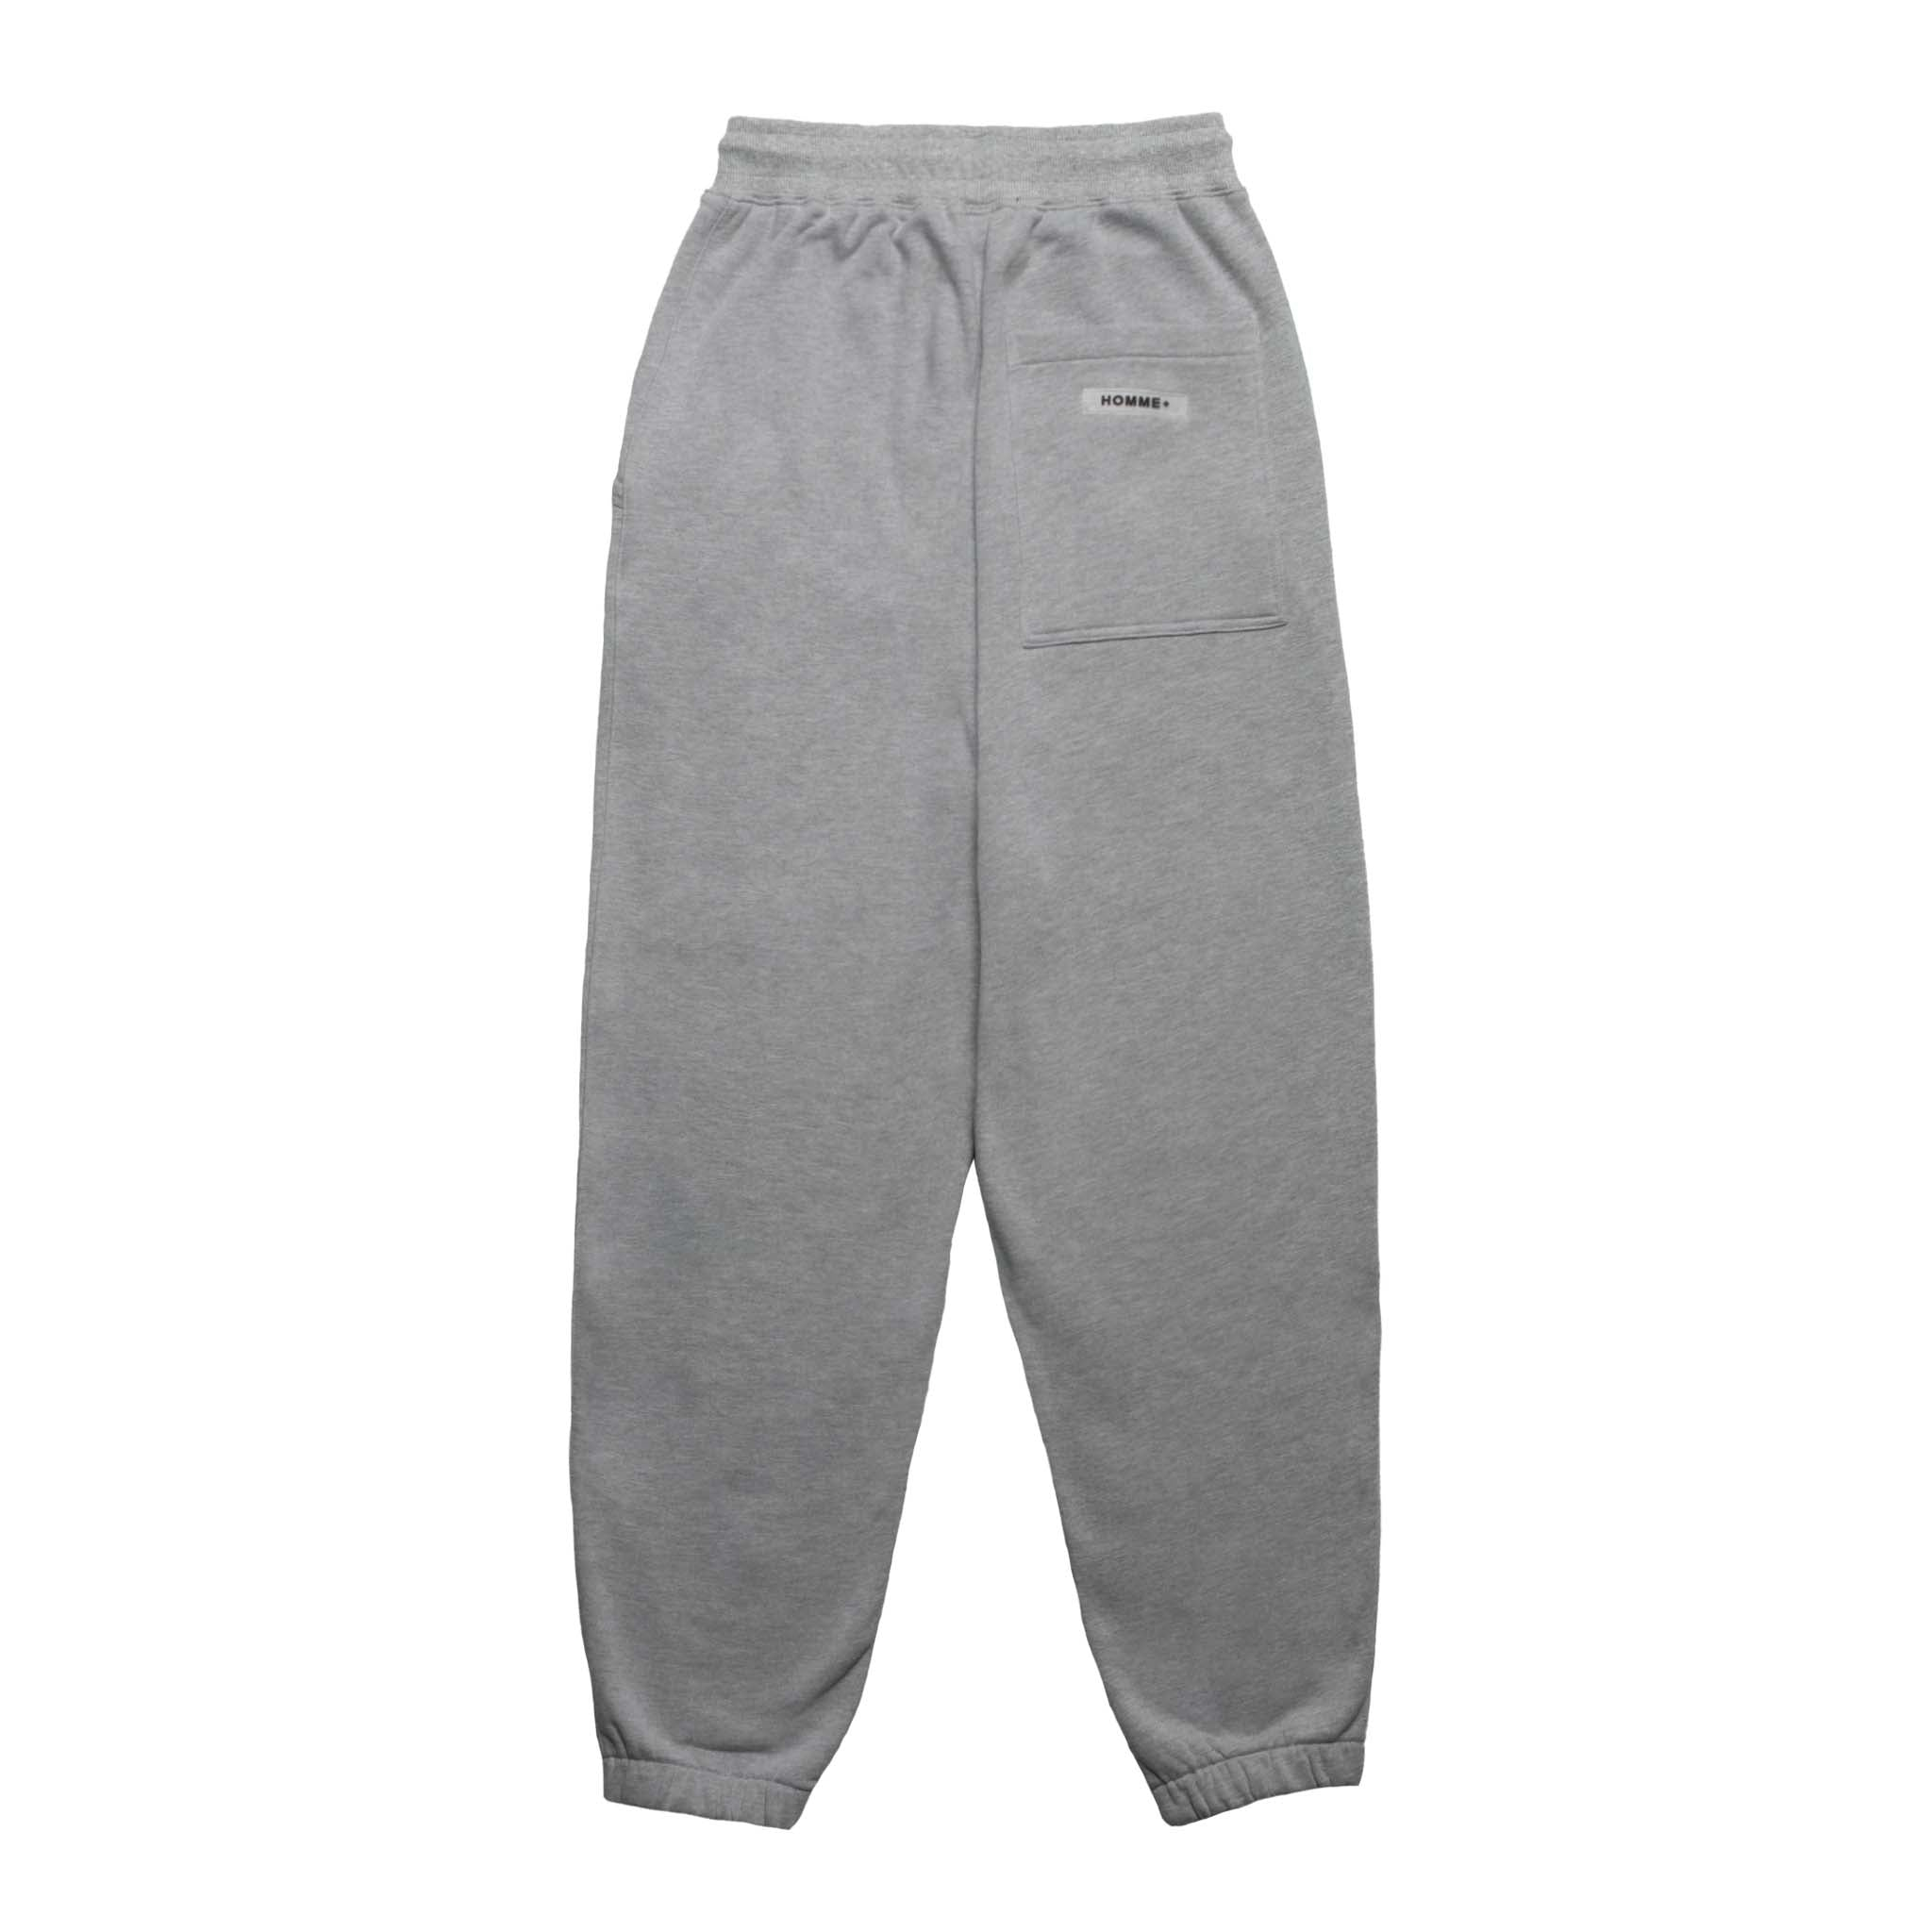 HOMME+ 'ESSENTIAL' Knit Jogger Heather Grey